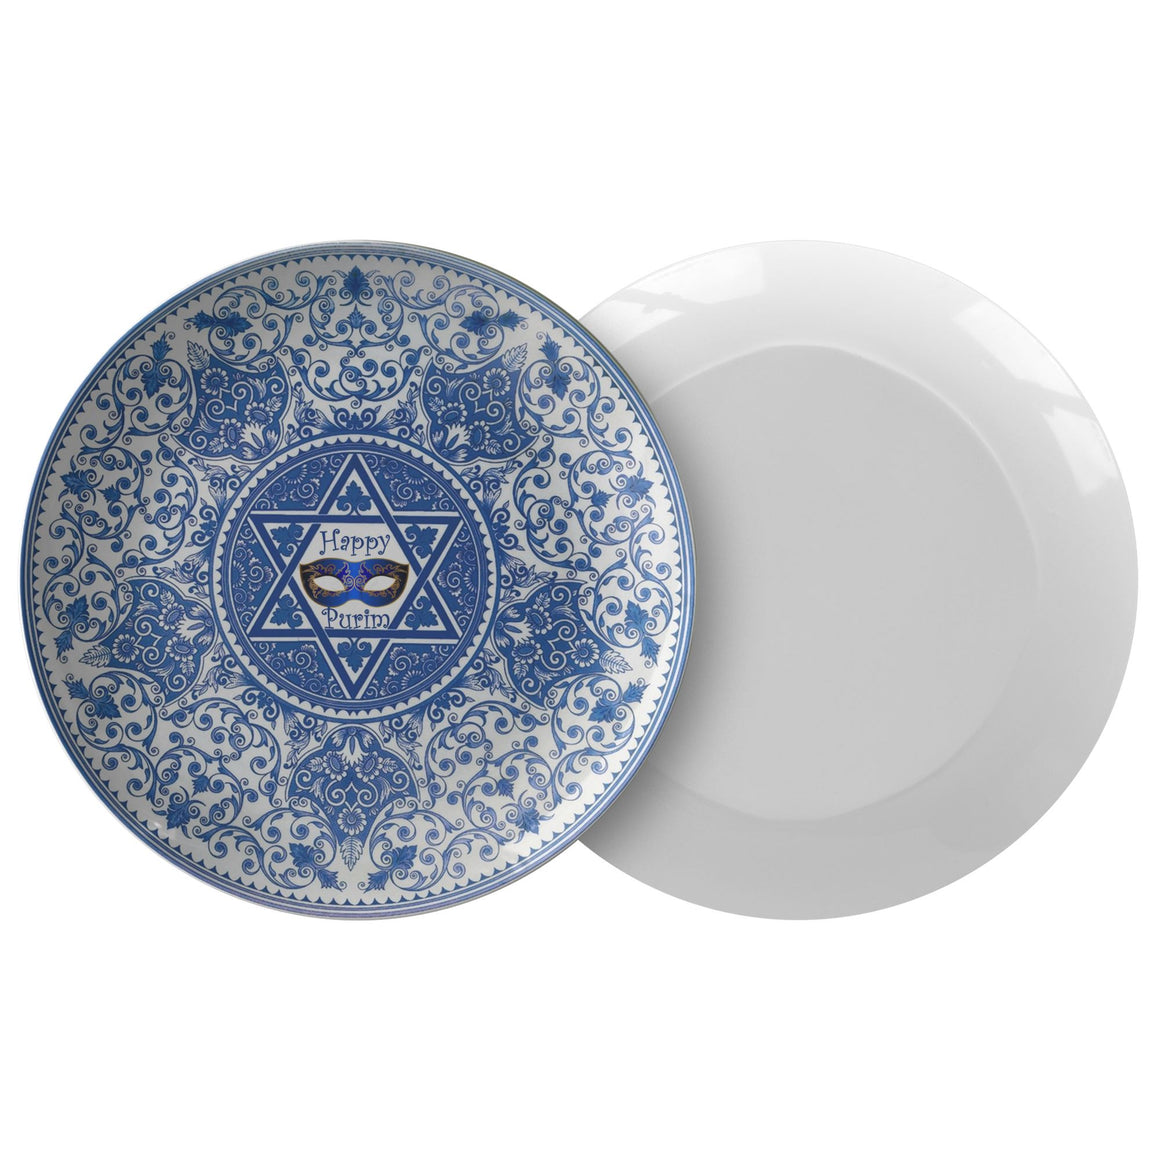 Happy Purim Serving & Dinner Plates Dinnerware Single Plate